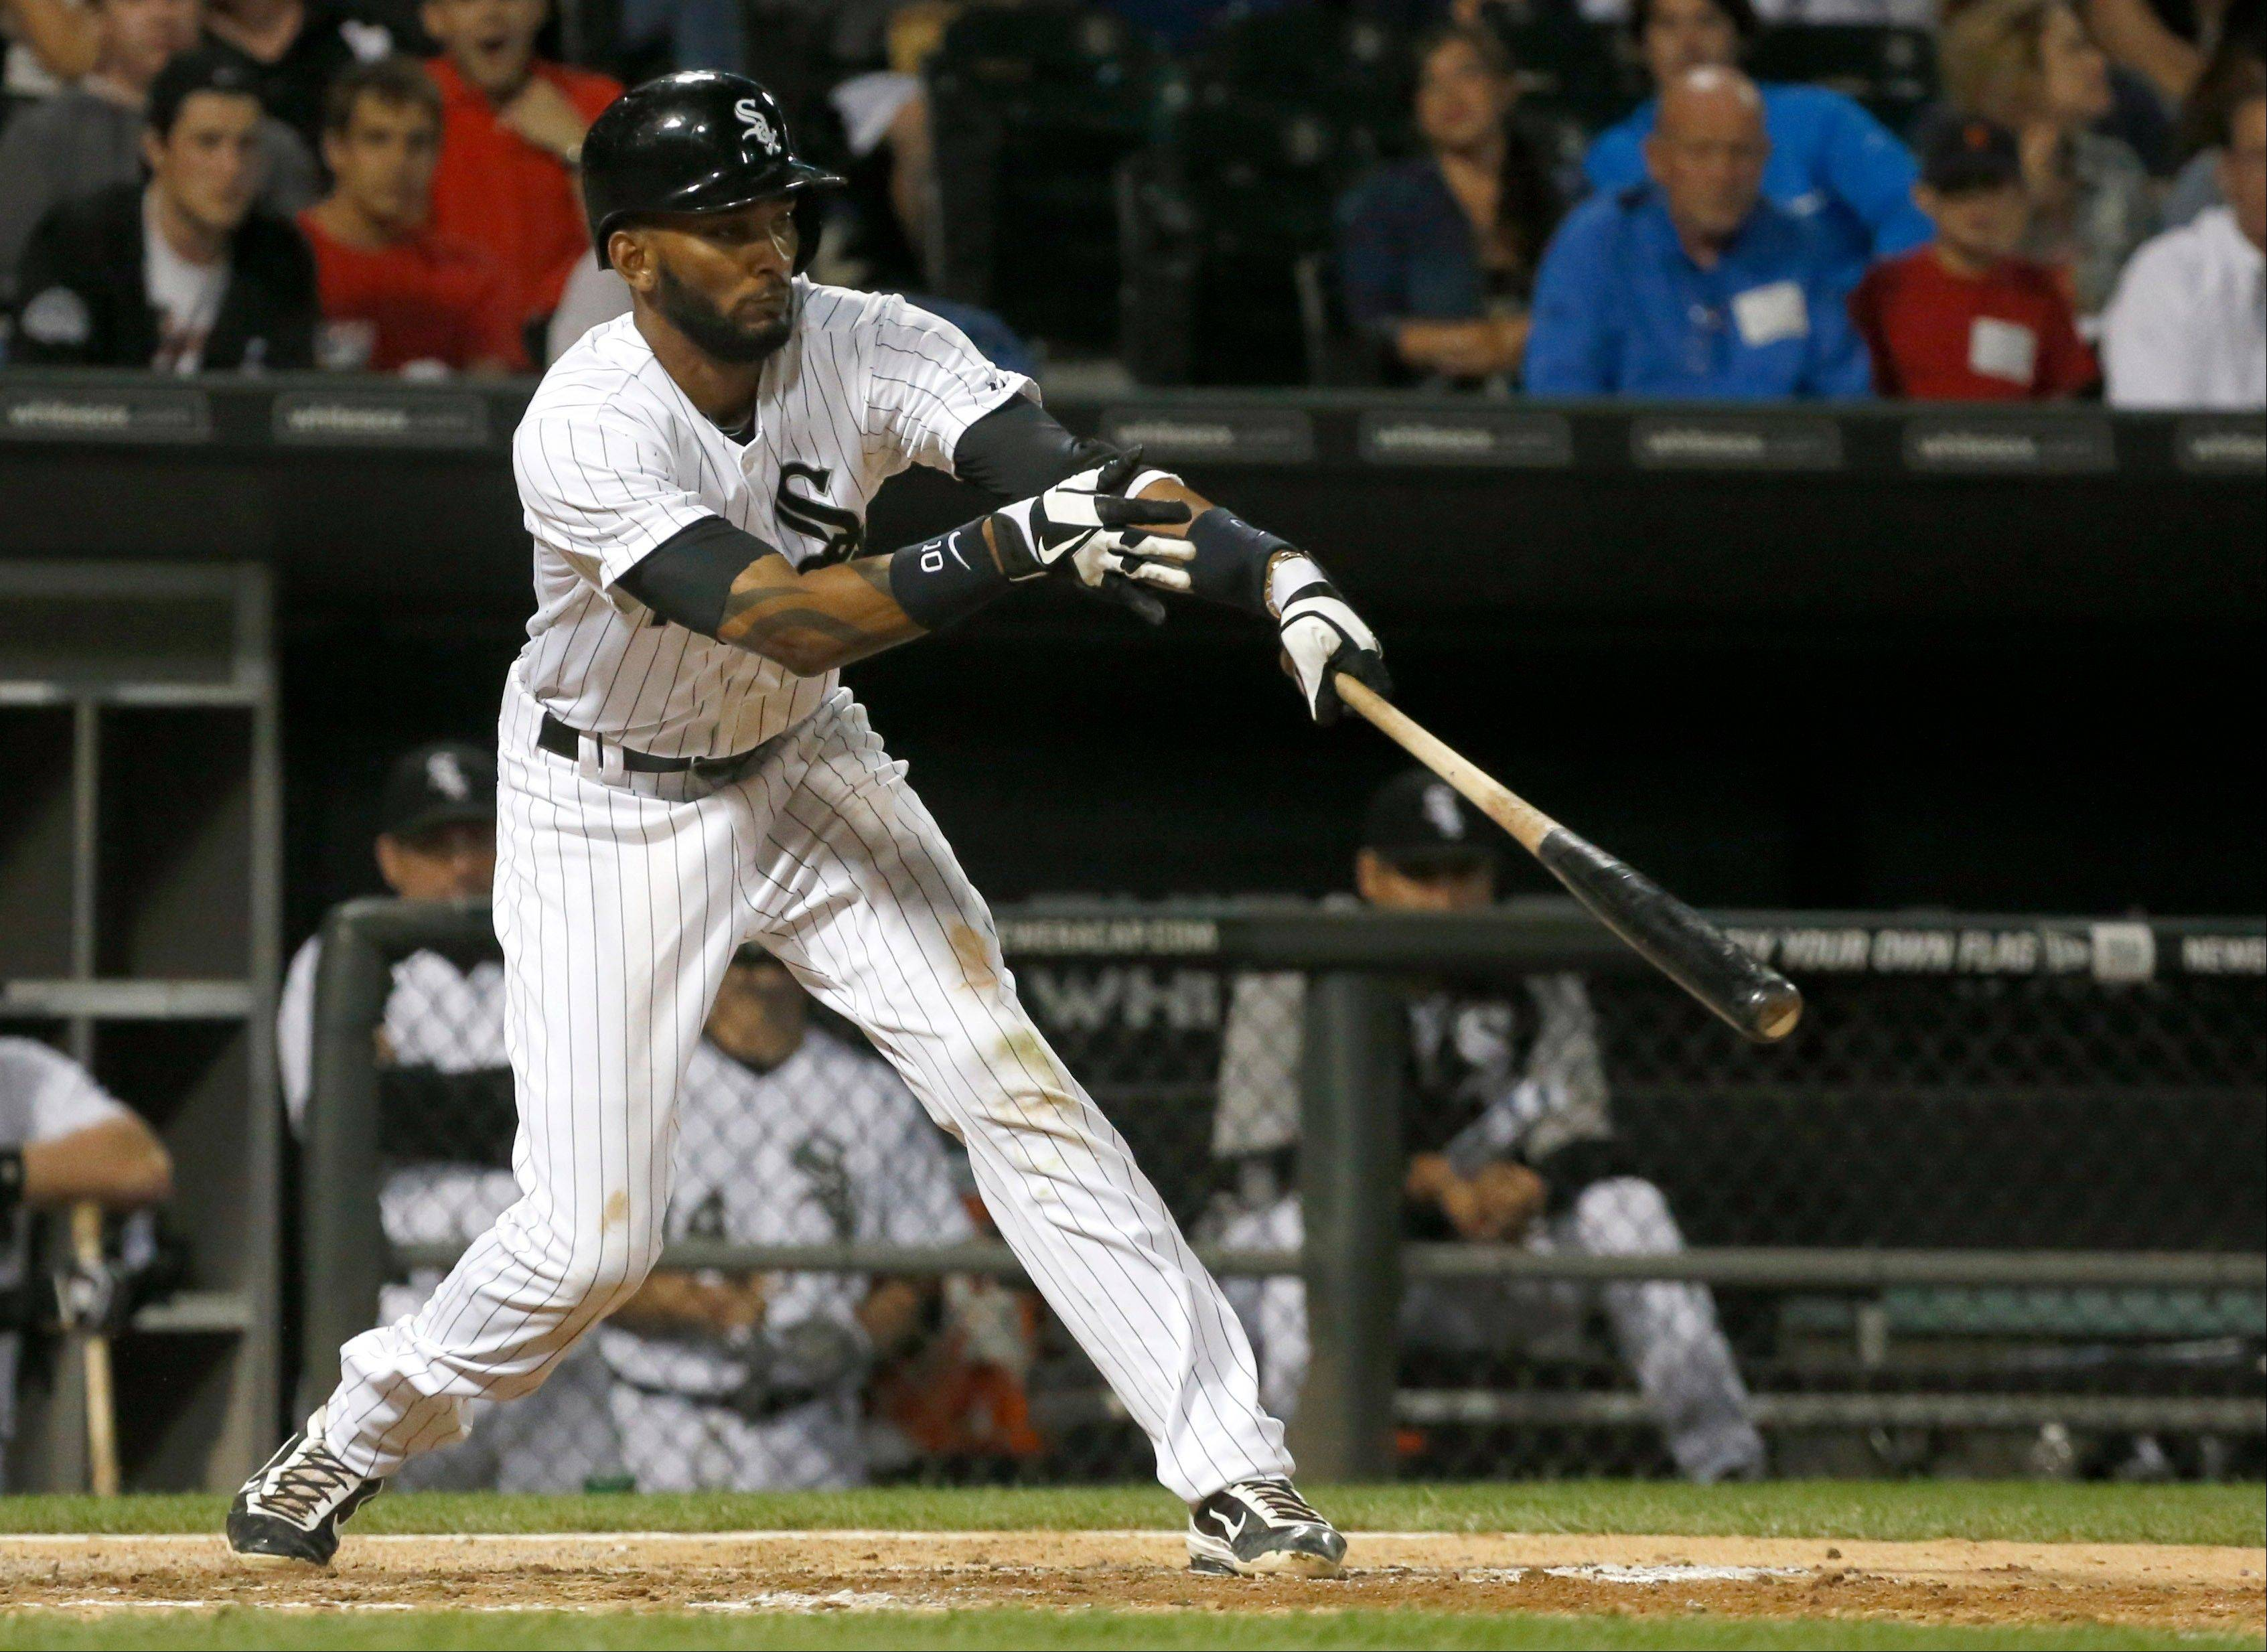 Chicago White Sox's Alexei Ramirez swings on an RBI single off Detroit Tigers relief pitcher Bruce Rondon during the seventh inning of a baseball game Wednesday, July 24, 2013, in Chicago. (AP Photo/Charles Rex Arbogast)